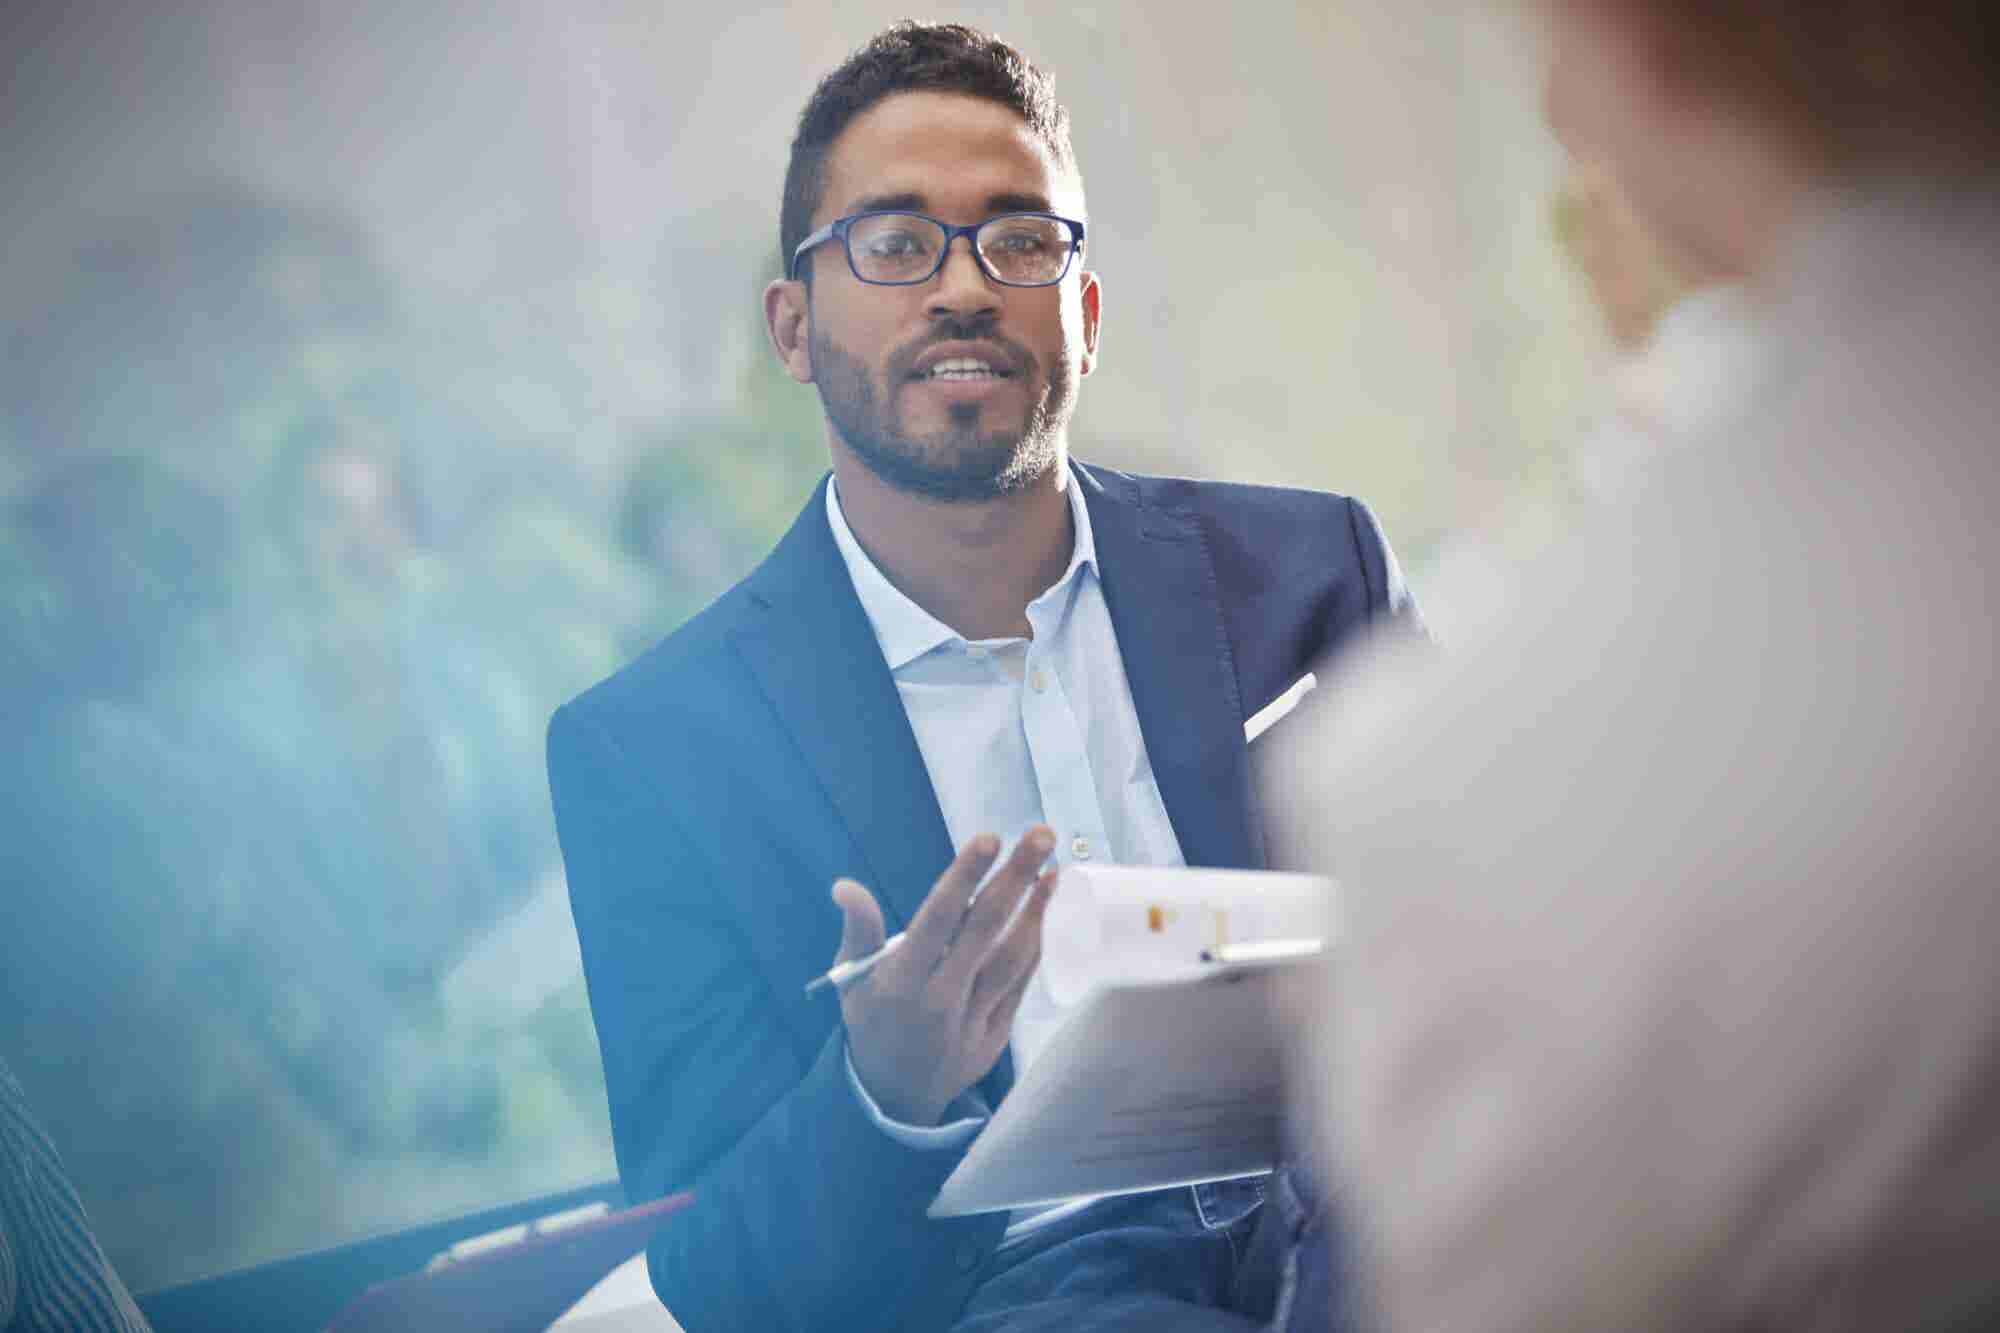 Why Your Professional Persona Matters